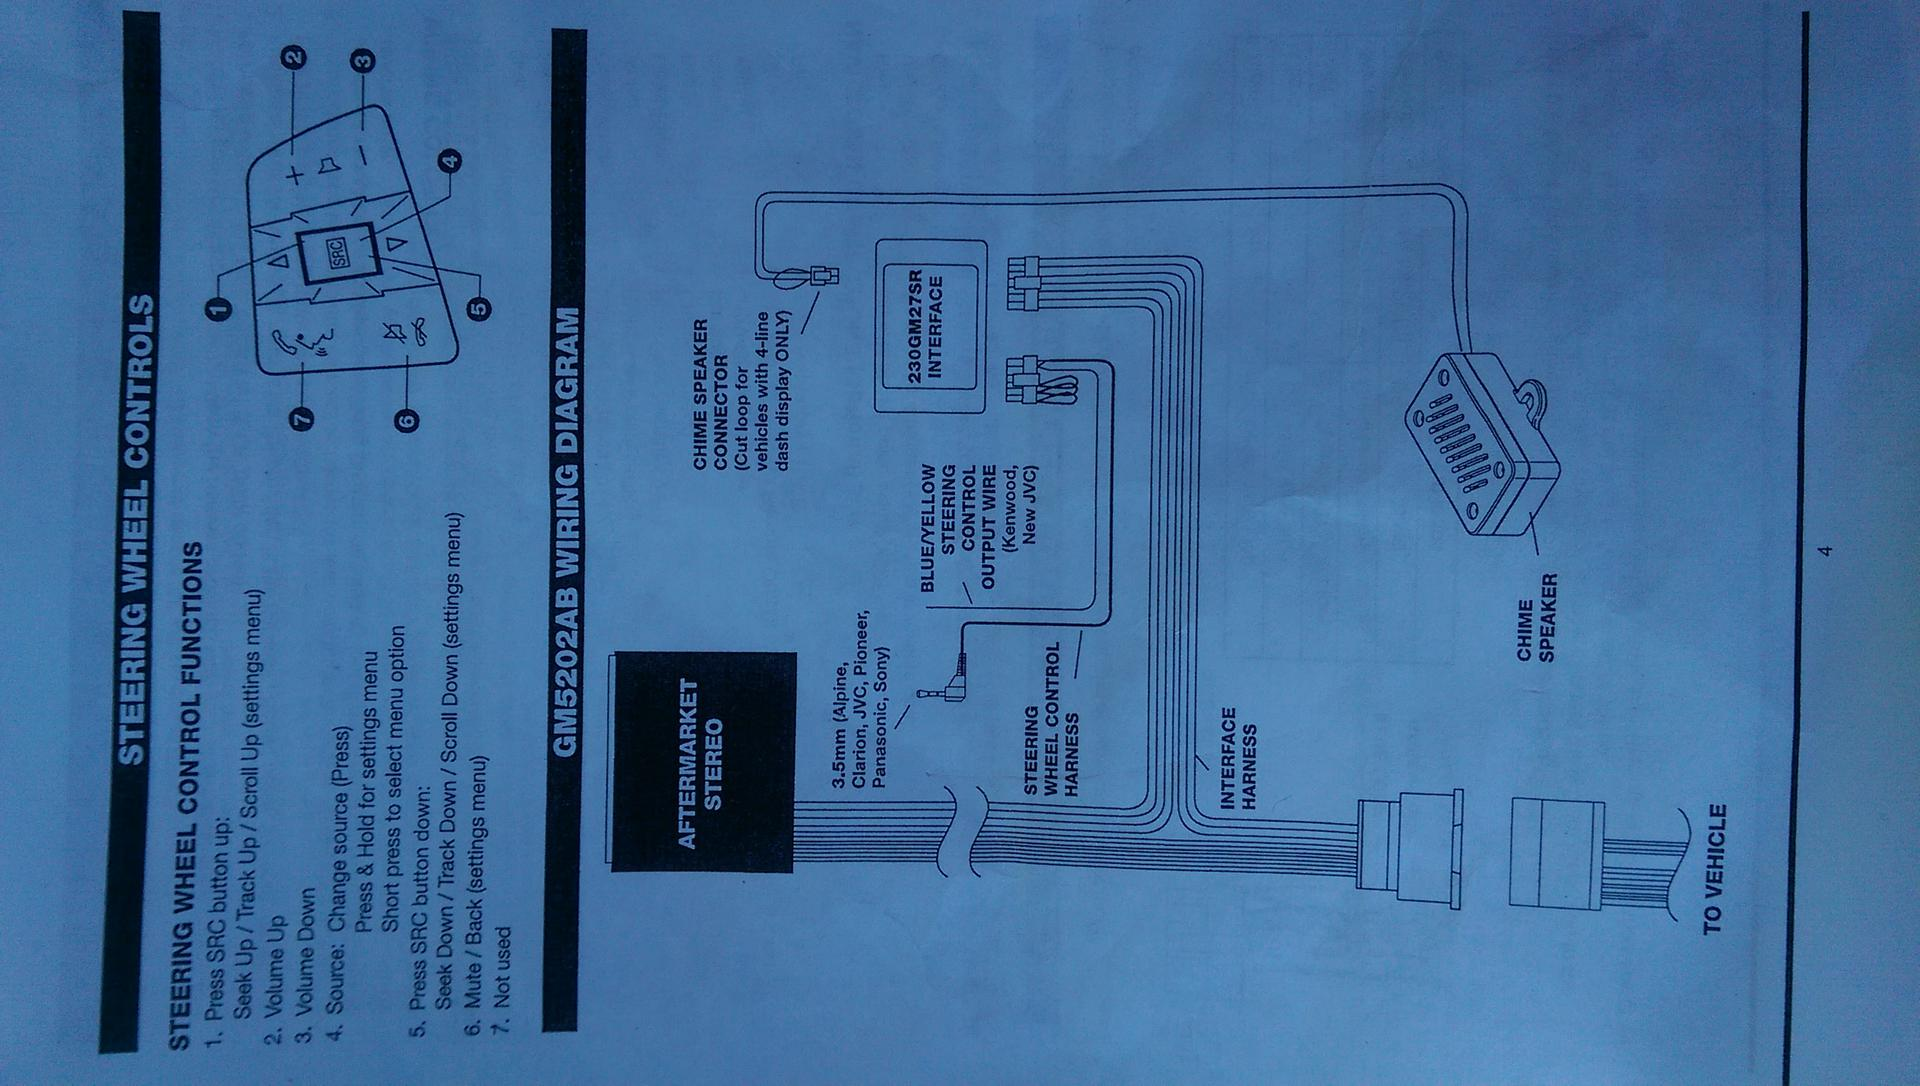 hight resolution of this is the wiring diagram that came with the gm5202ab which includes the gm27sr